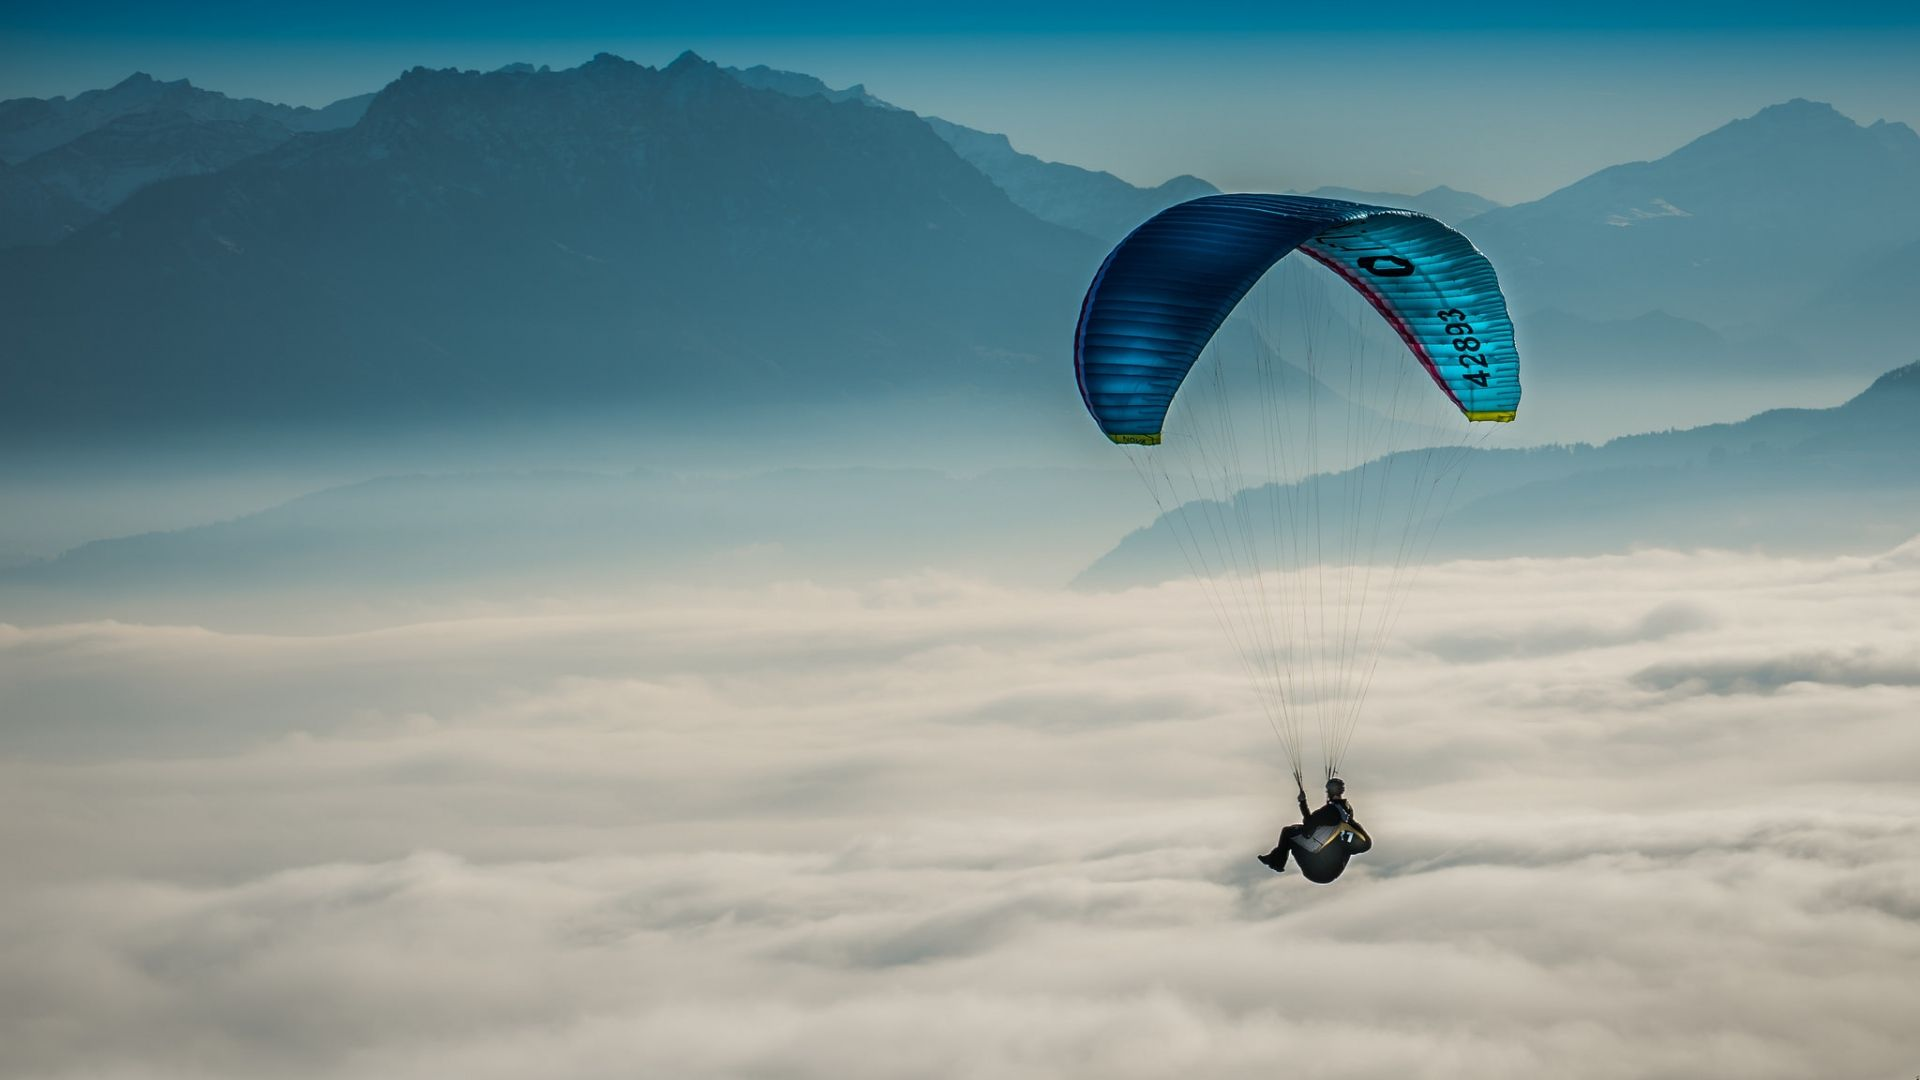 full hd 1080p paragliding wallpapers hd, desktop backgrounds | epic